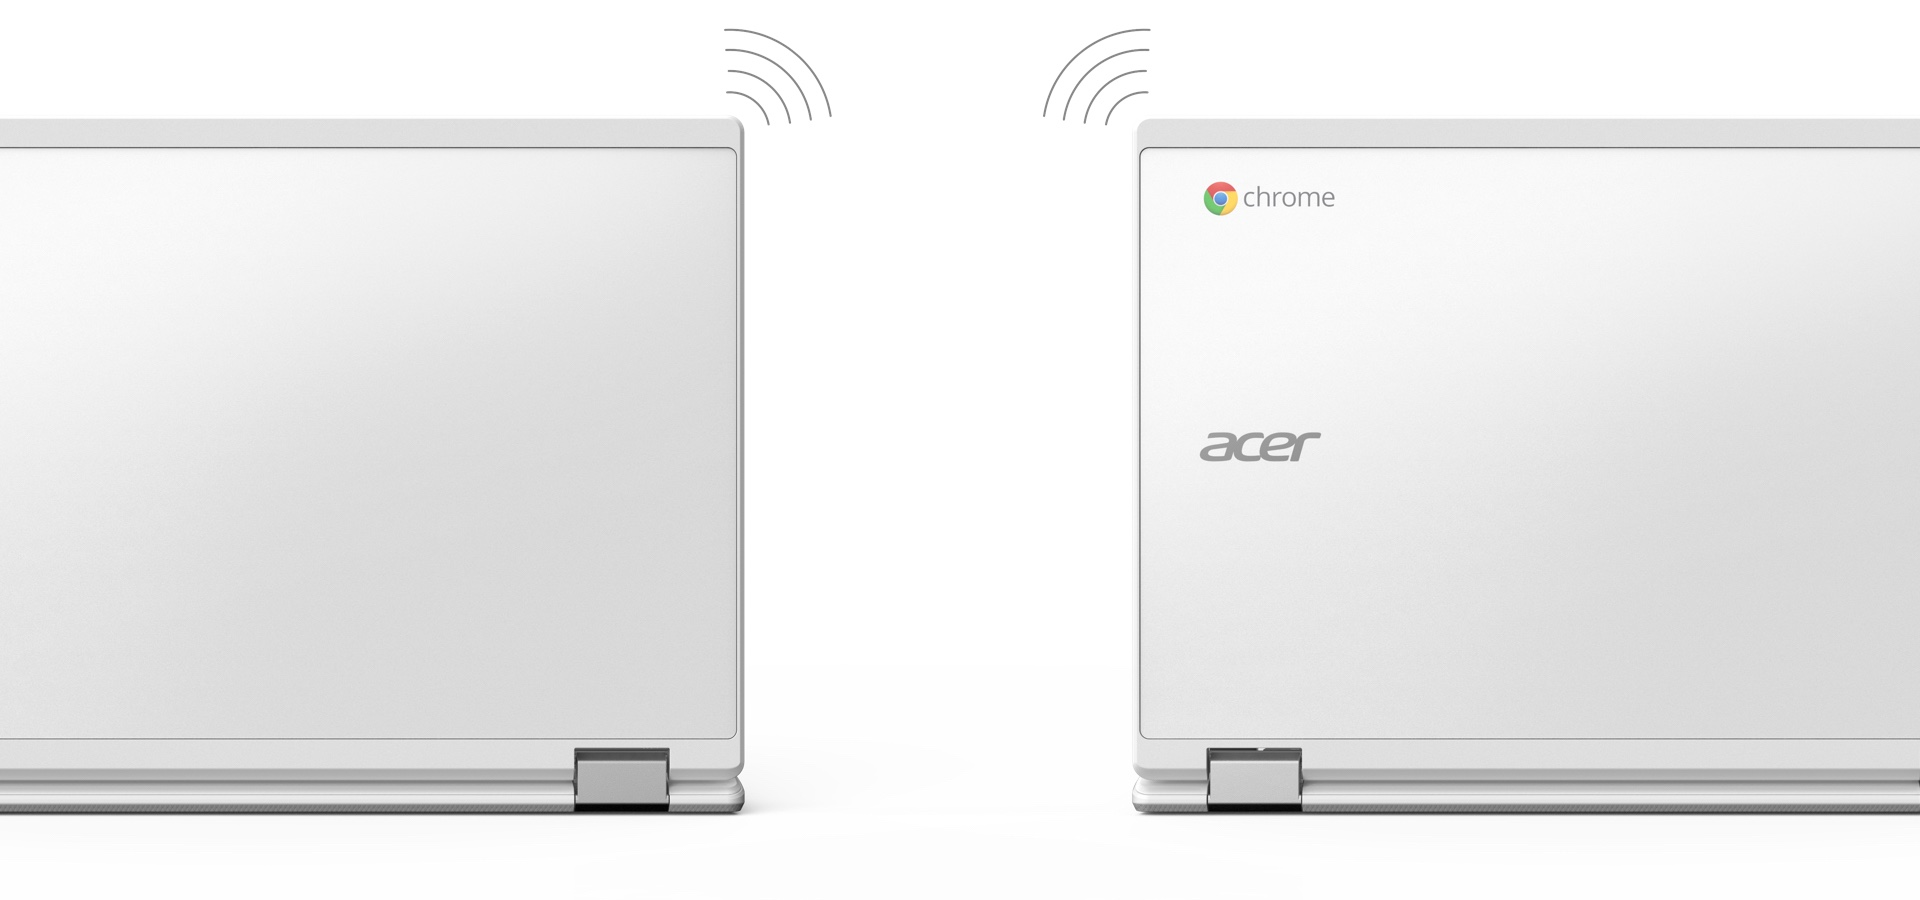 Chromebook 11 CB3-132 design - The Power of Wireless - Large